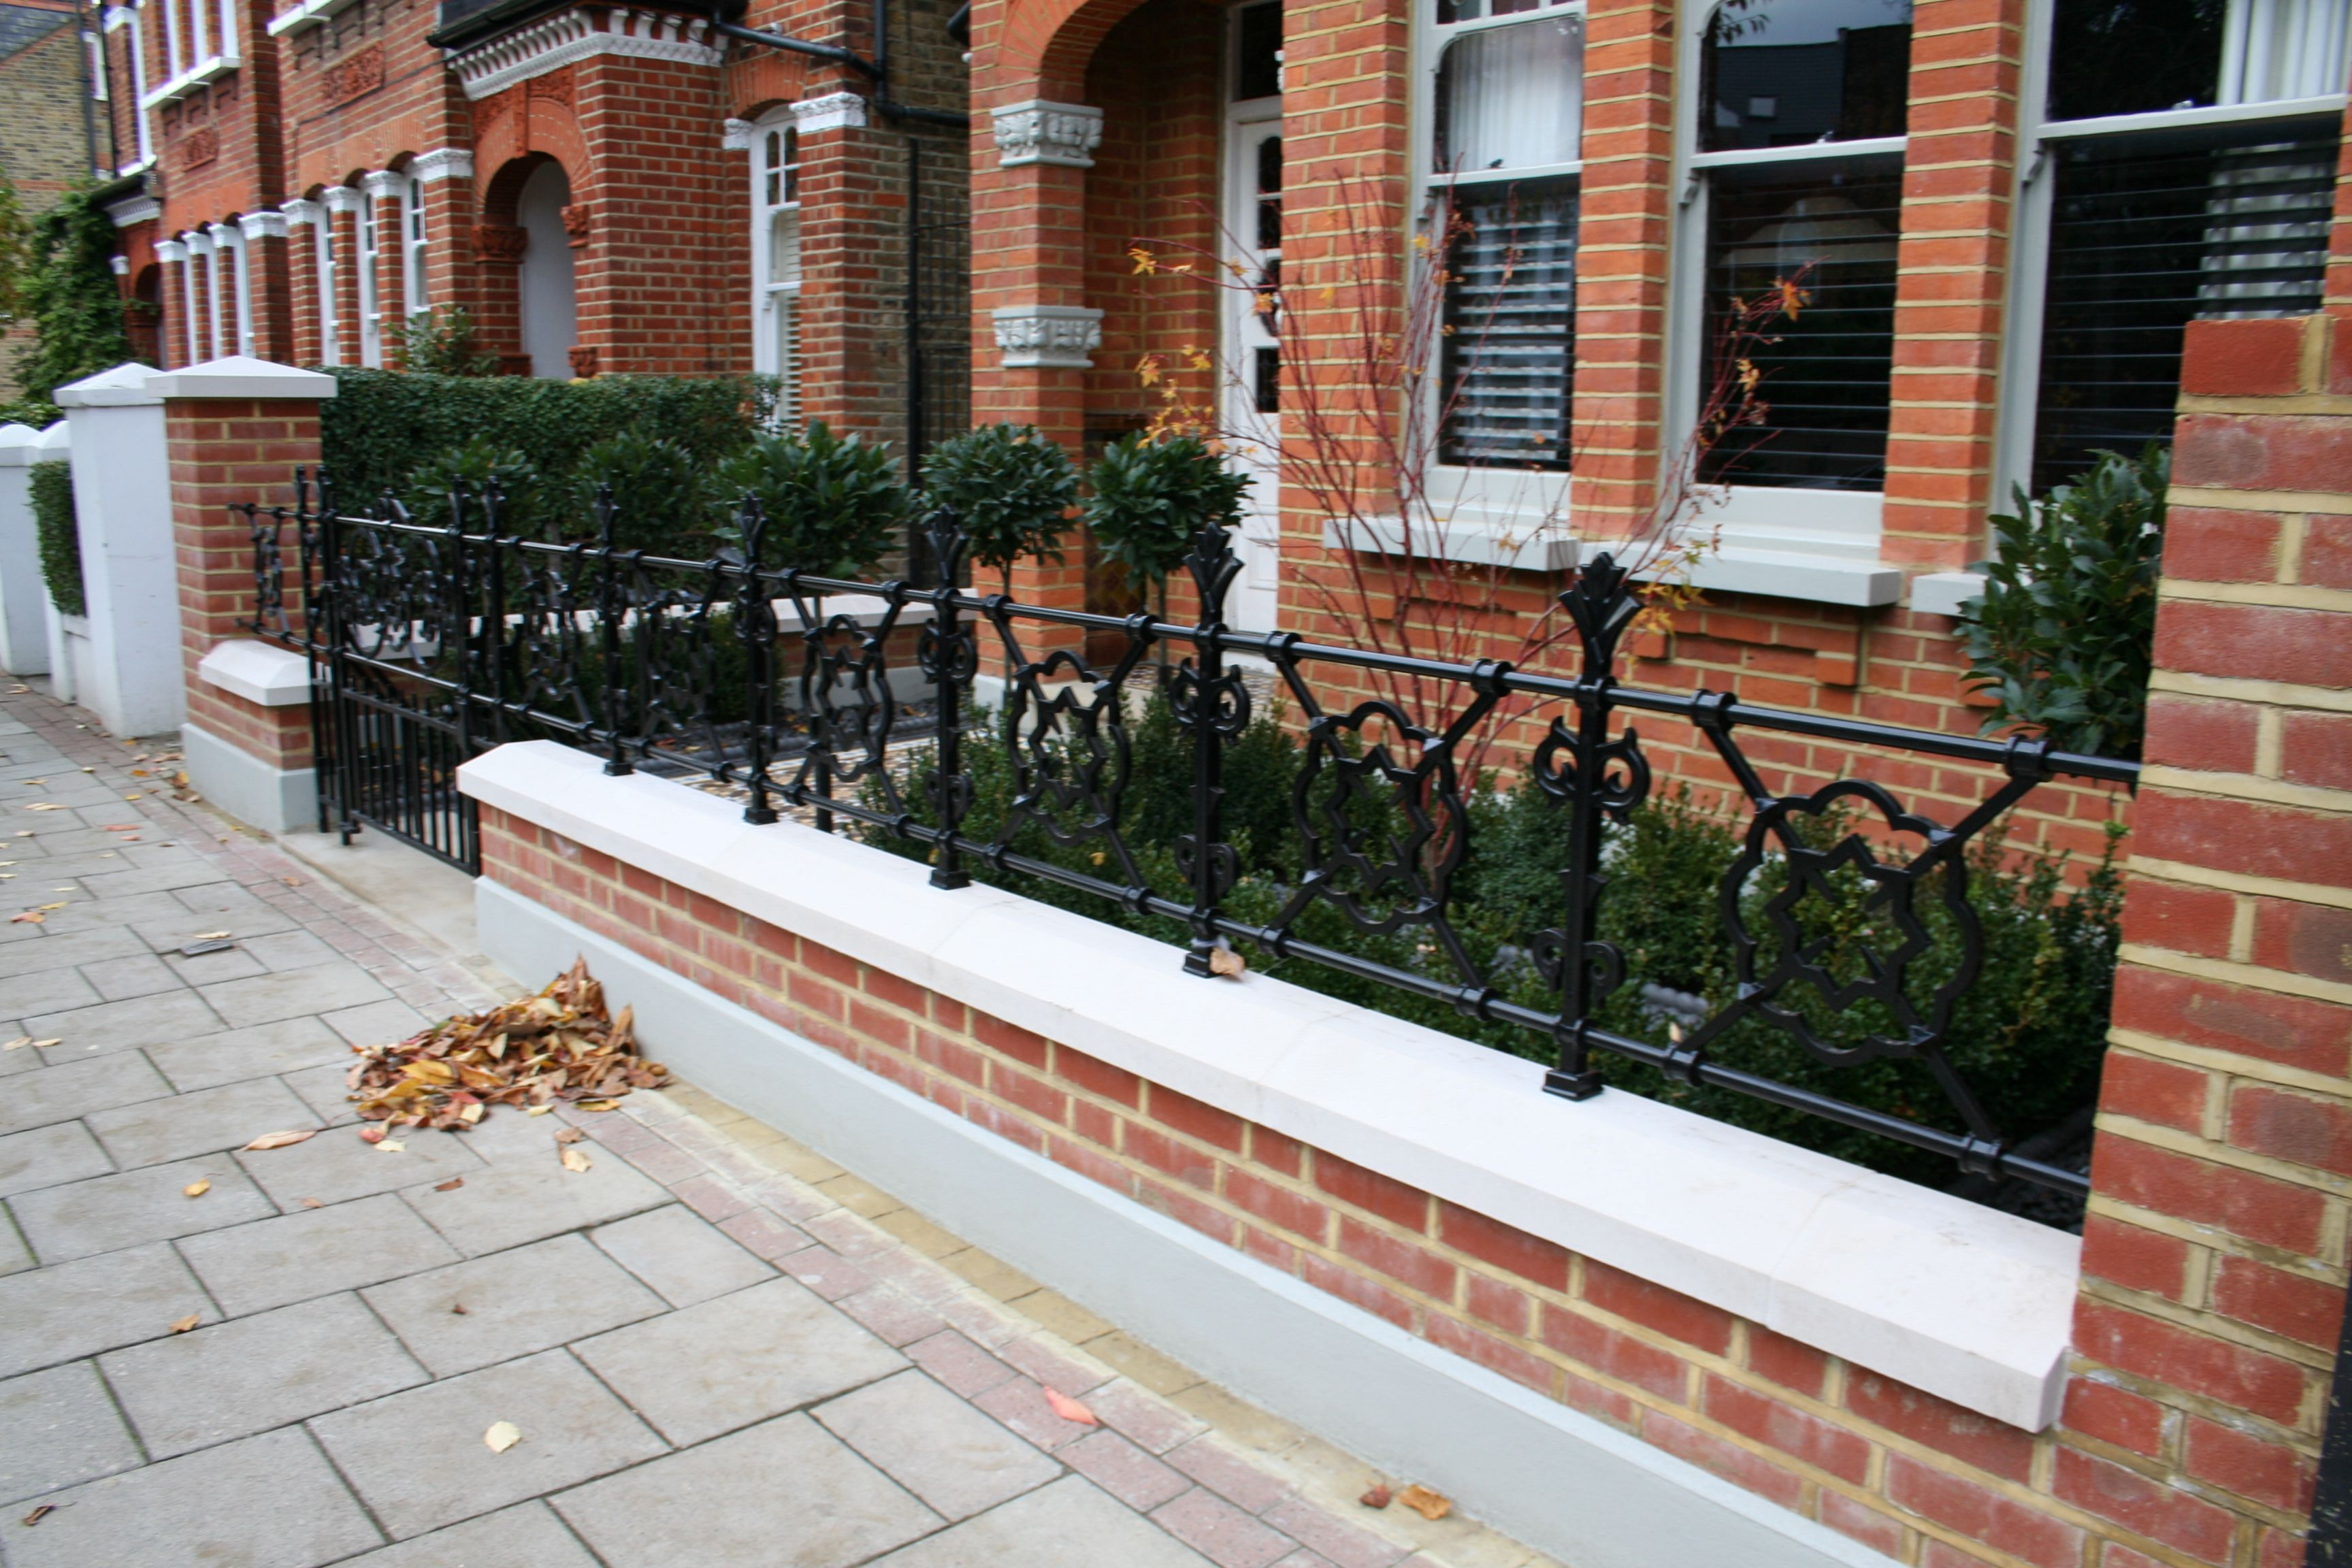 Black Cast Iron Railings And Gate With Red Brick Wall In London Front Garden .